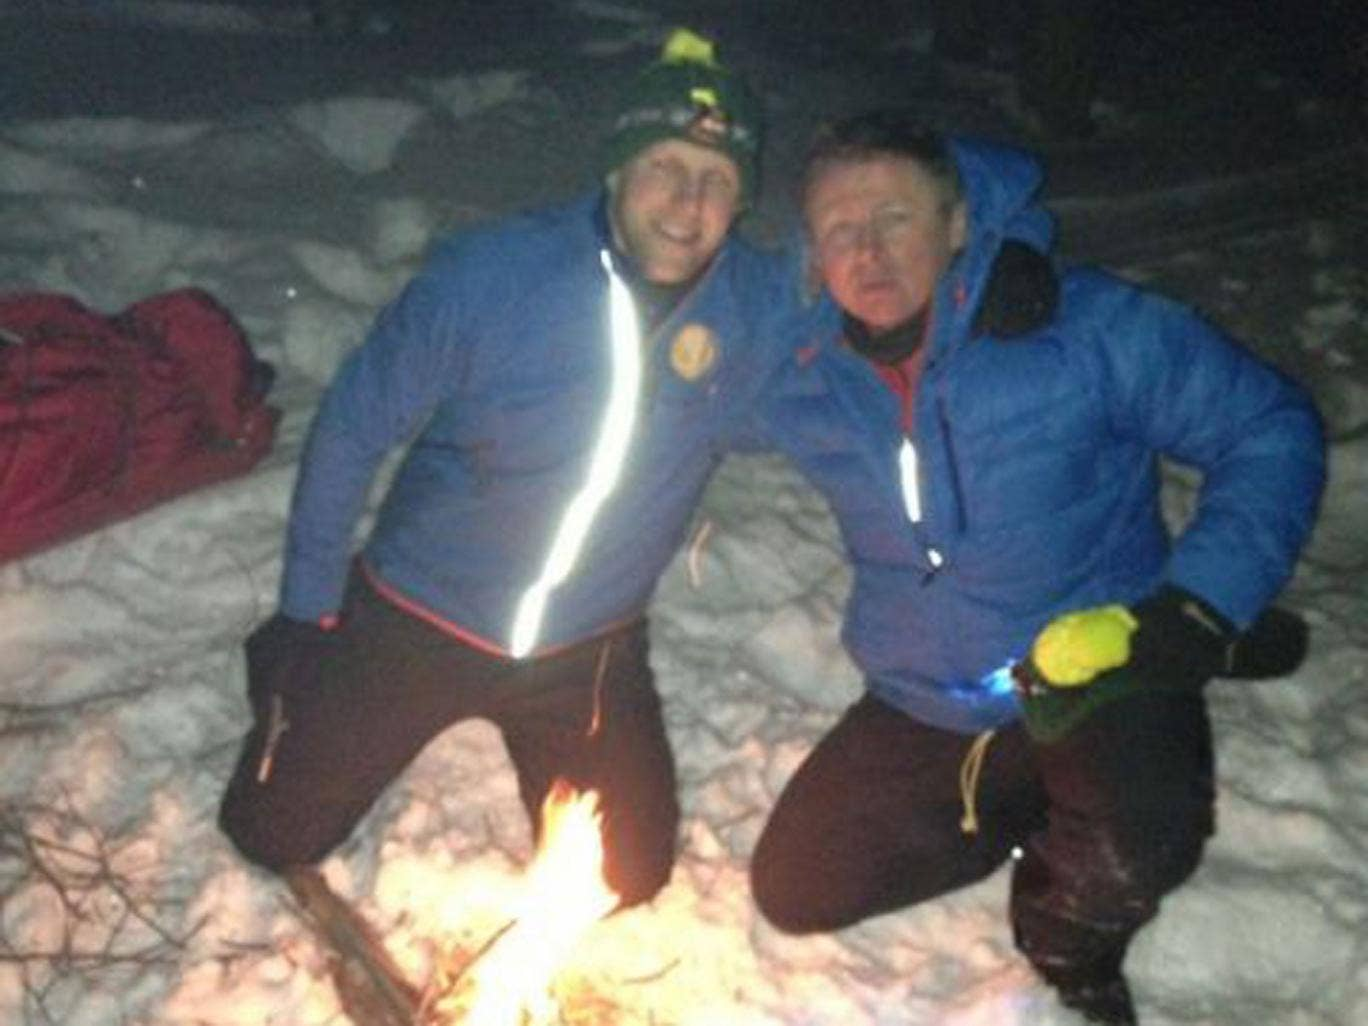 Welcome to the Yukon Artic Ultra, supposedly the world's toughest race